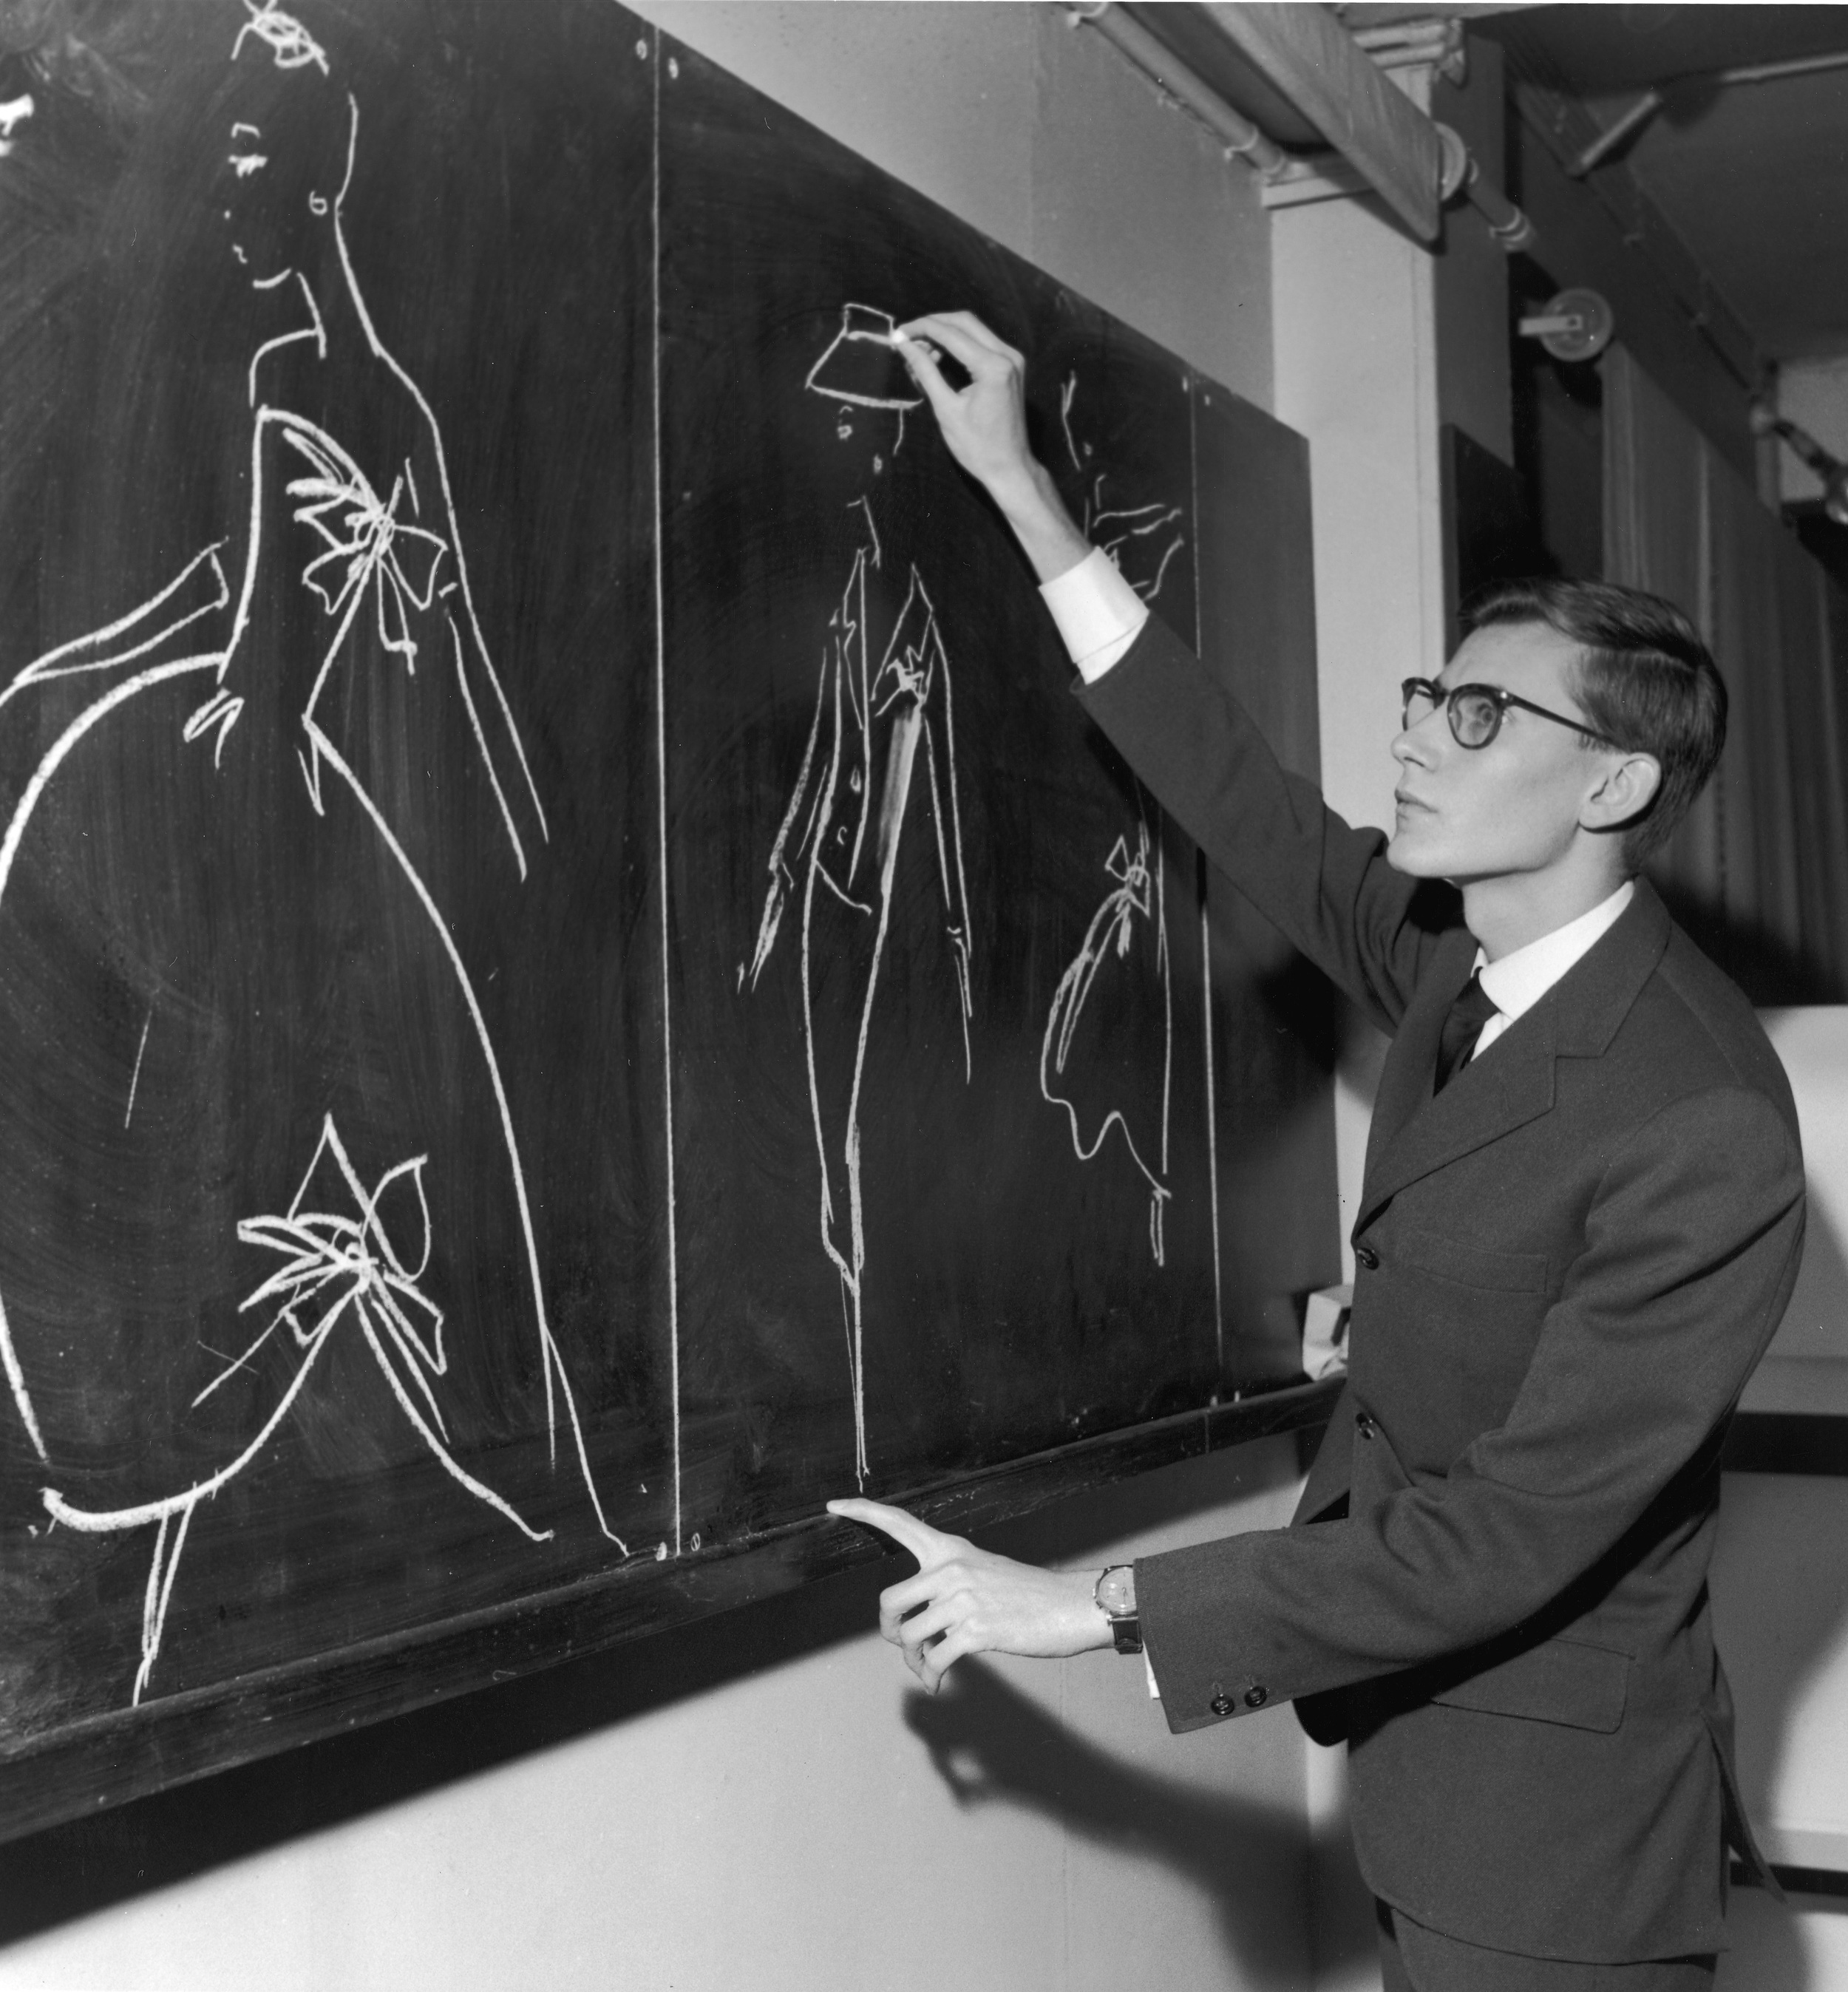 Yves Saint-Laurent using chalk to sketch fashion designs for Christian Dior. Paris, France 1957